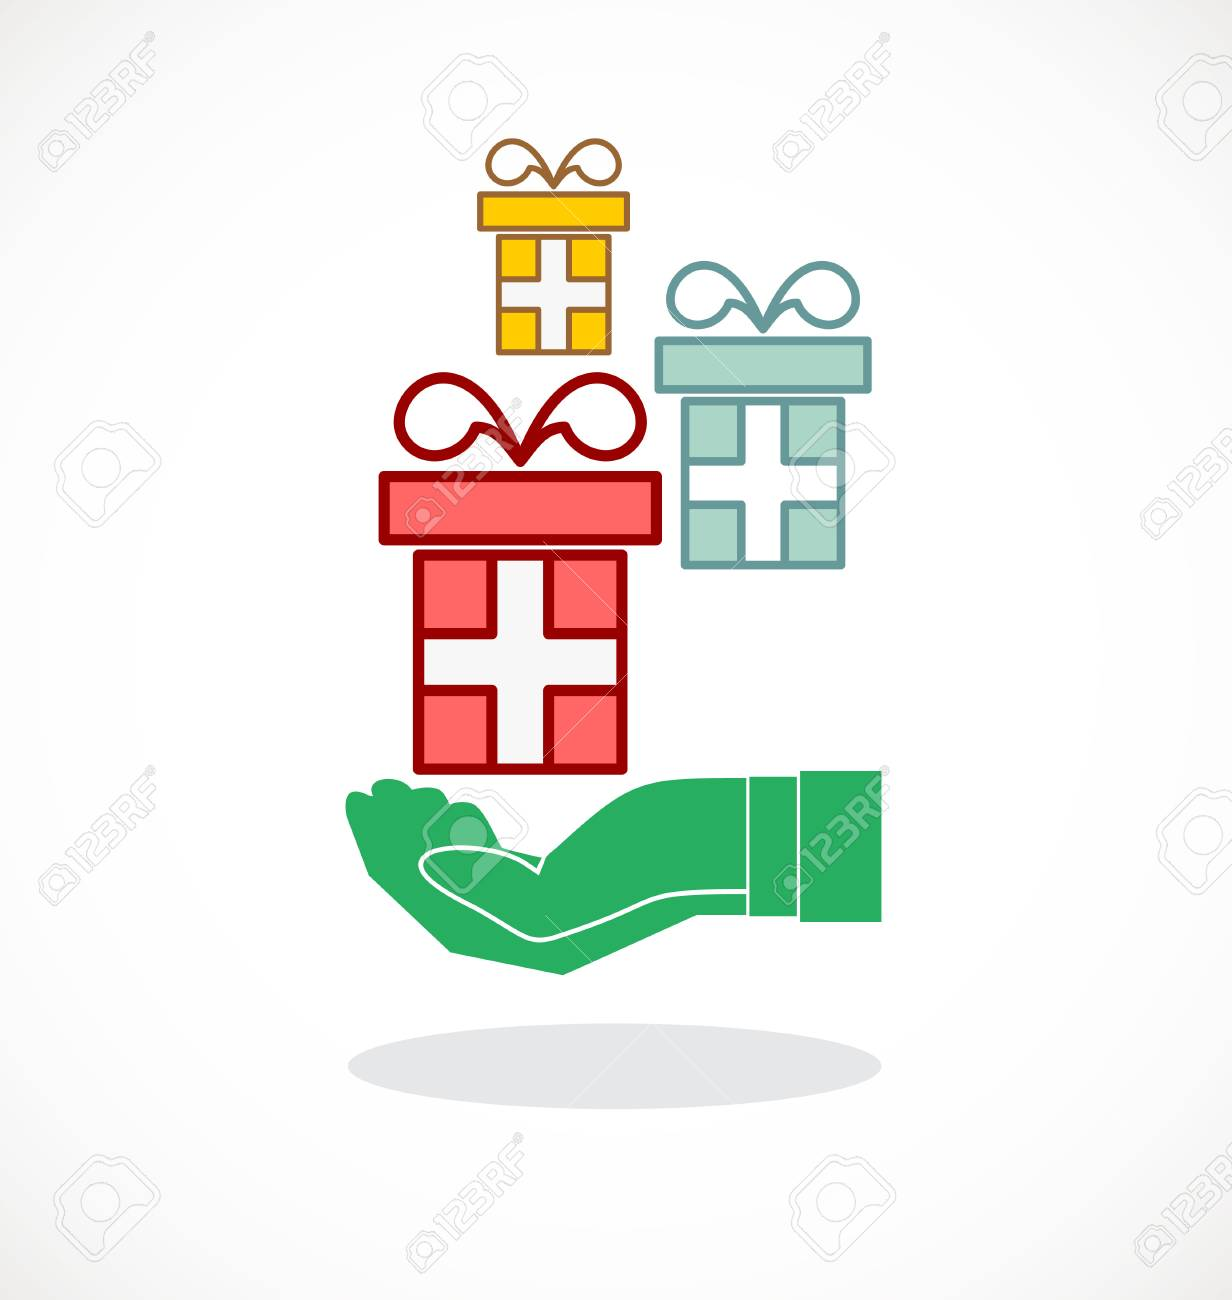 Hand And Gifts Icon Royalty Free Cliparts Vectors And Stock Illustration Image 66435827